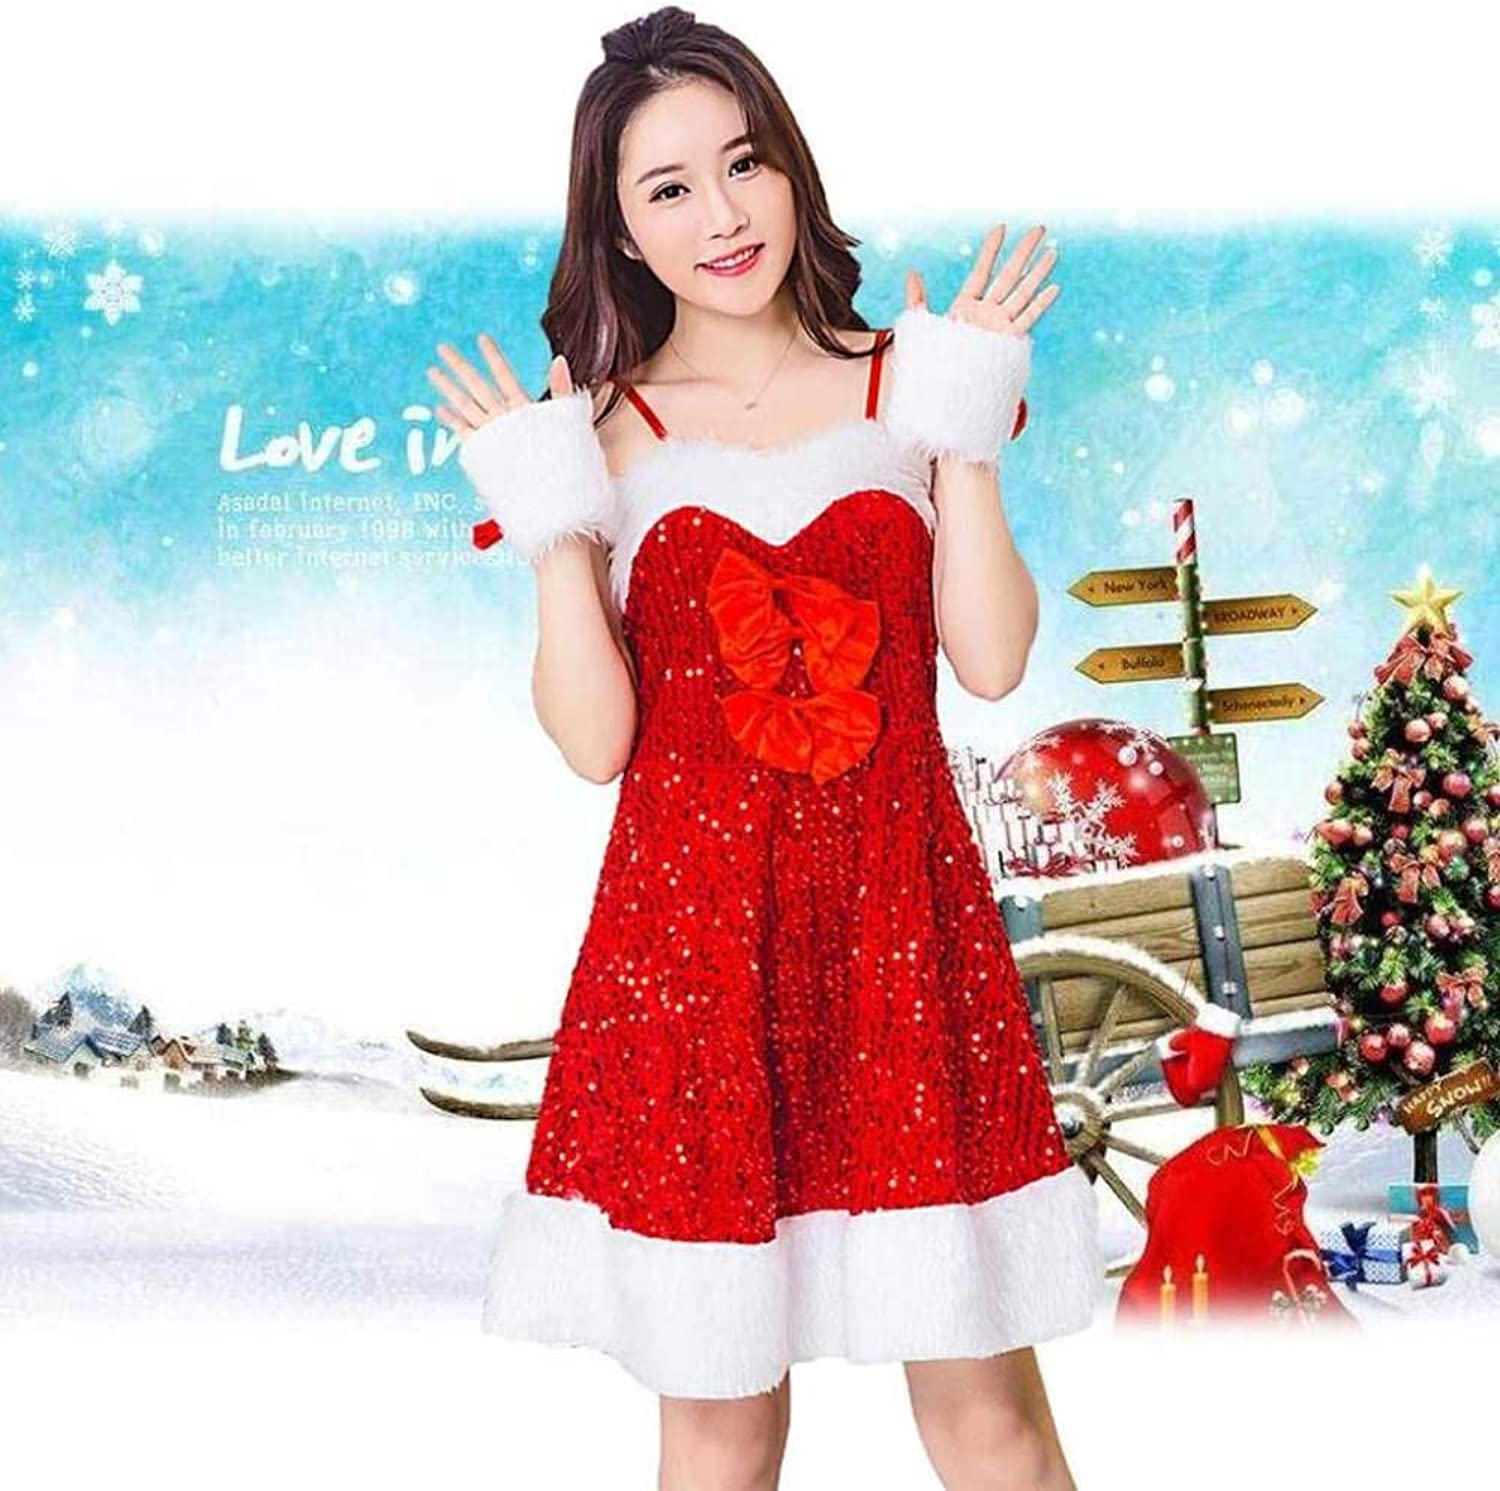 OFZYG Christmas Costume Sexy Cosplay Adult Woman Off Shoulder Sequin Christmas Dress Girls